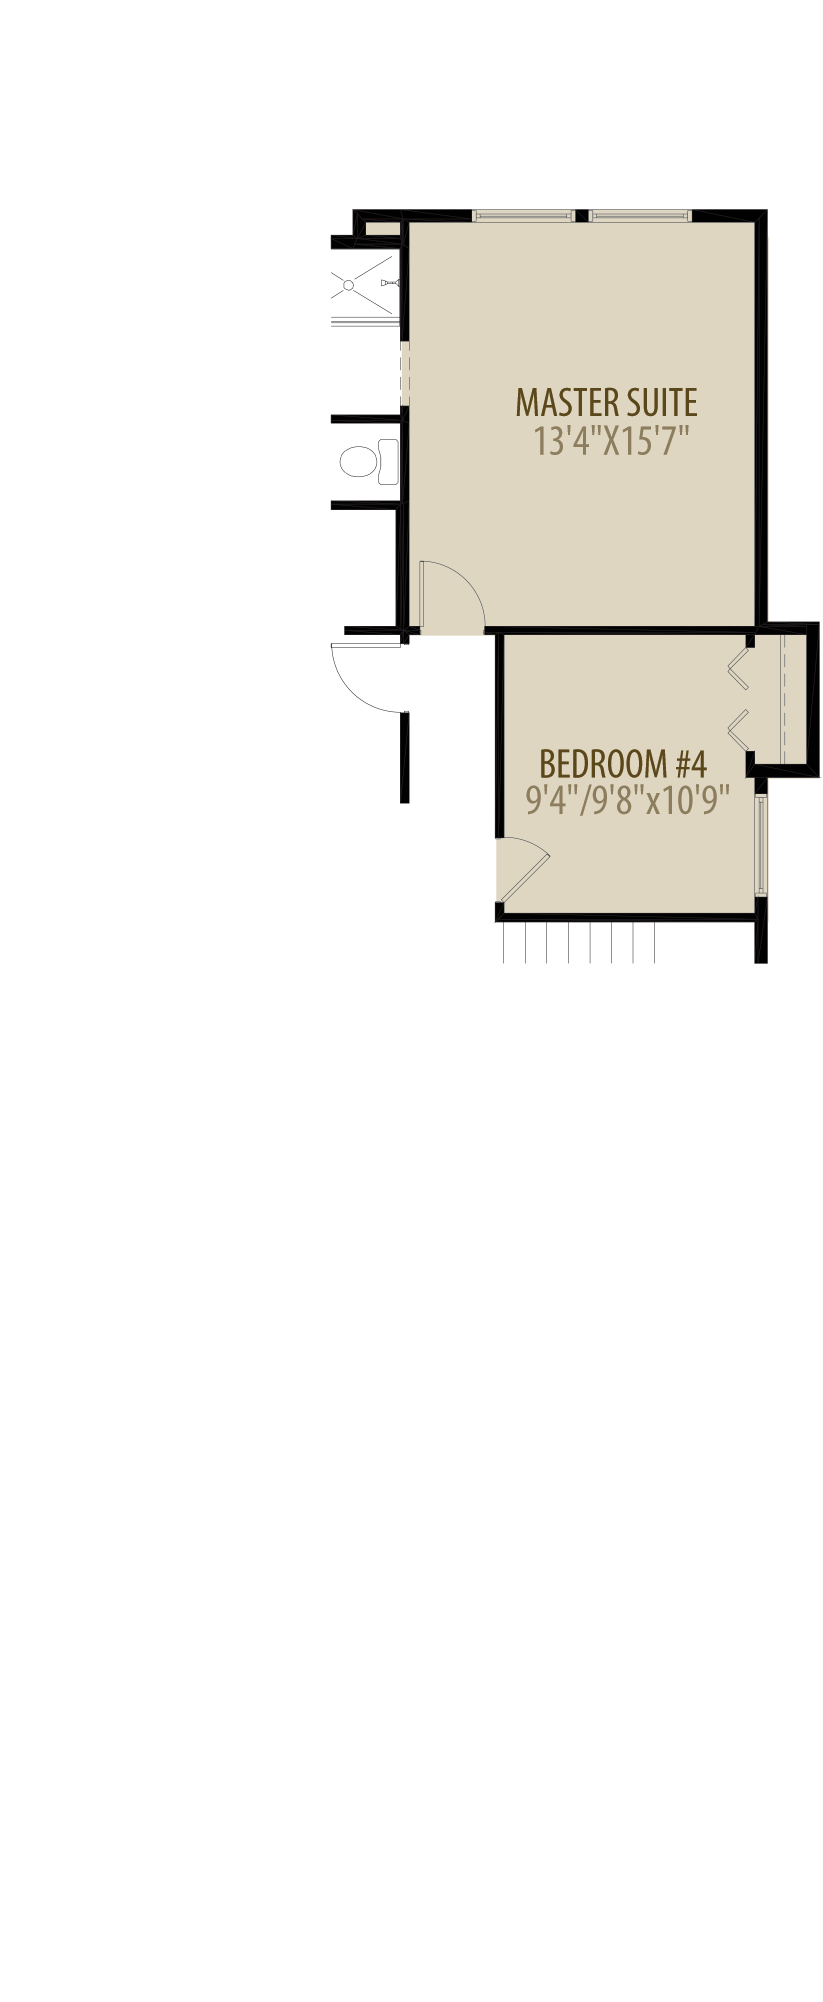 Alternate Optional 4th Bedroom adds 132 sq ft